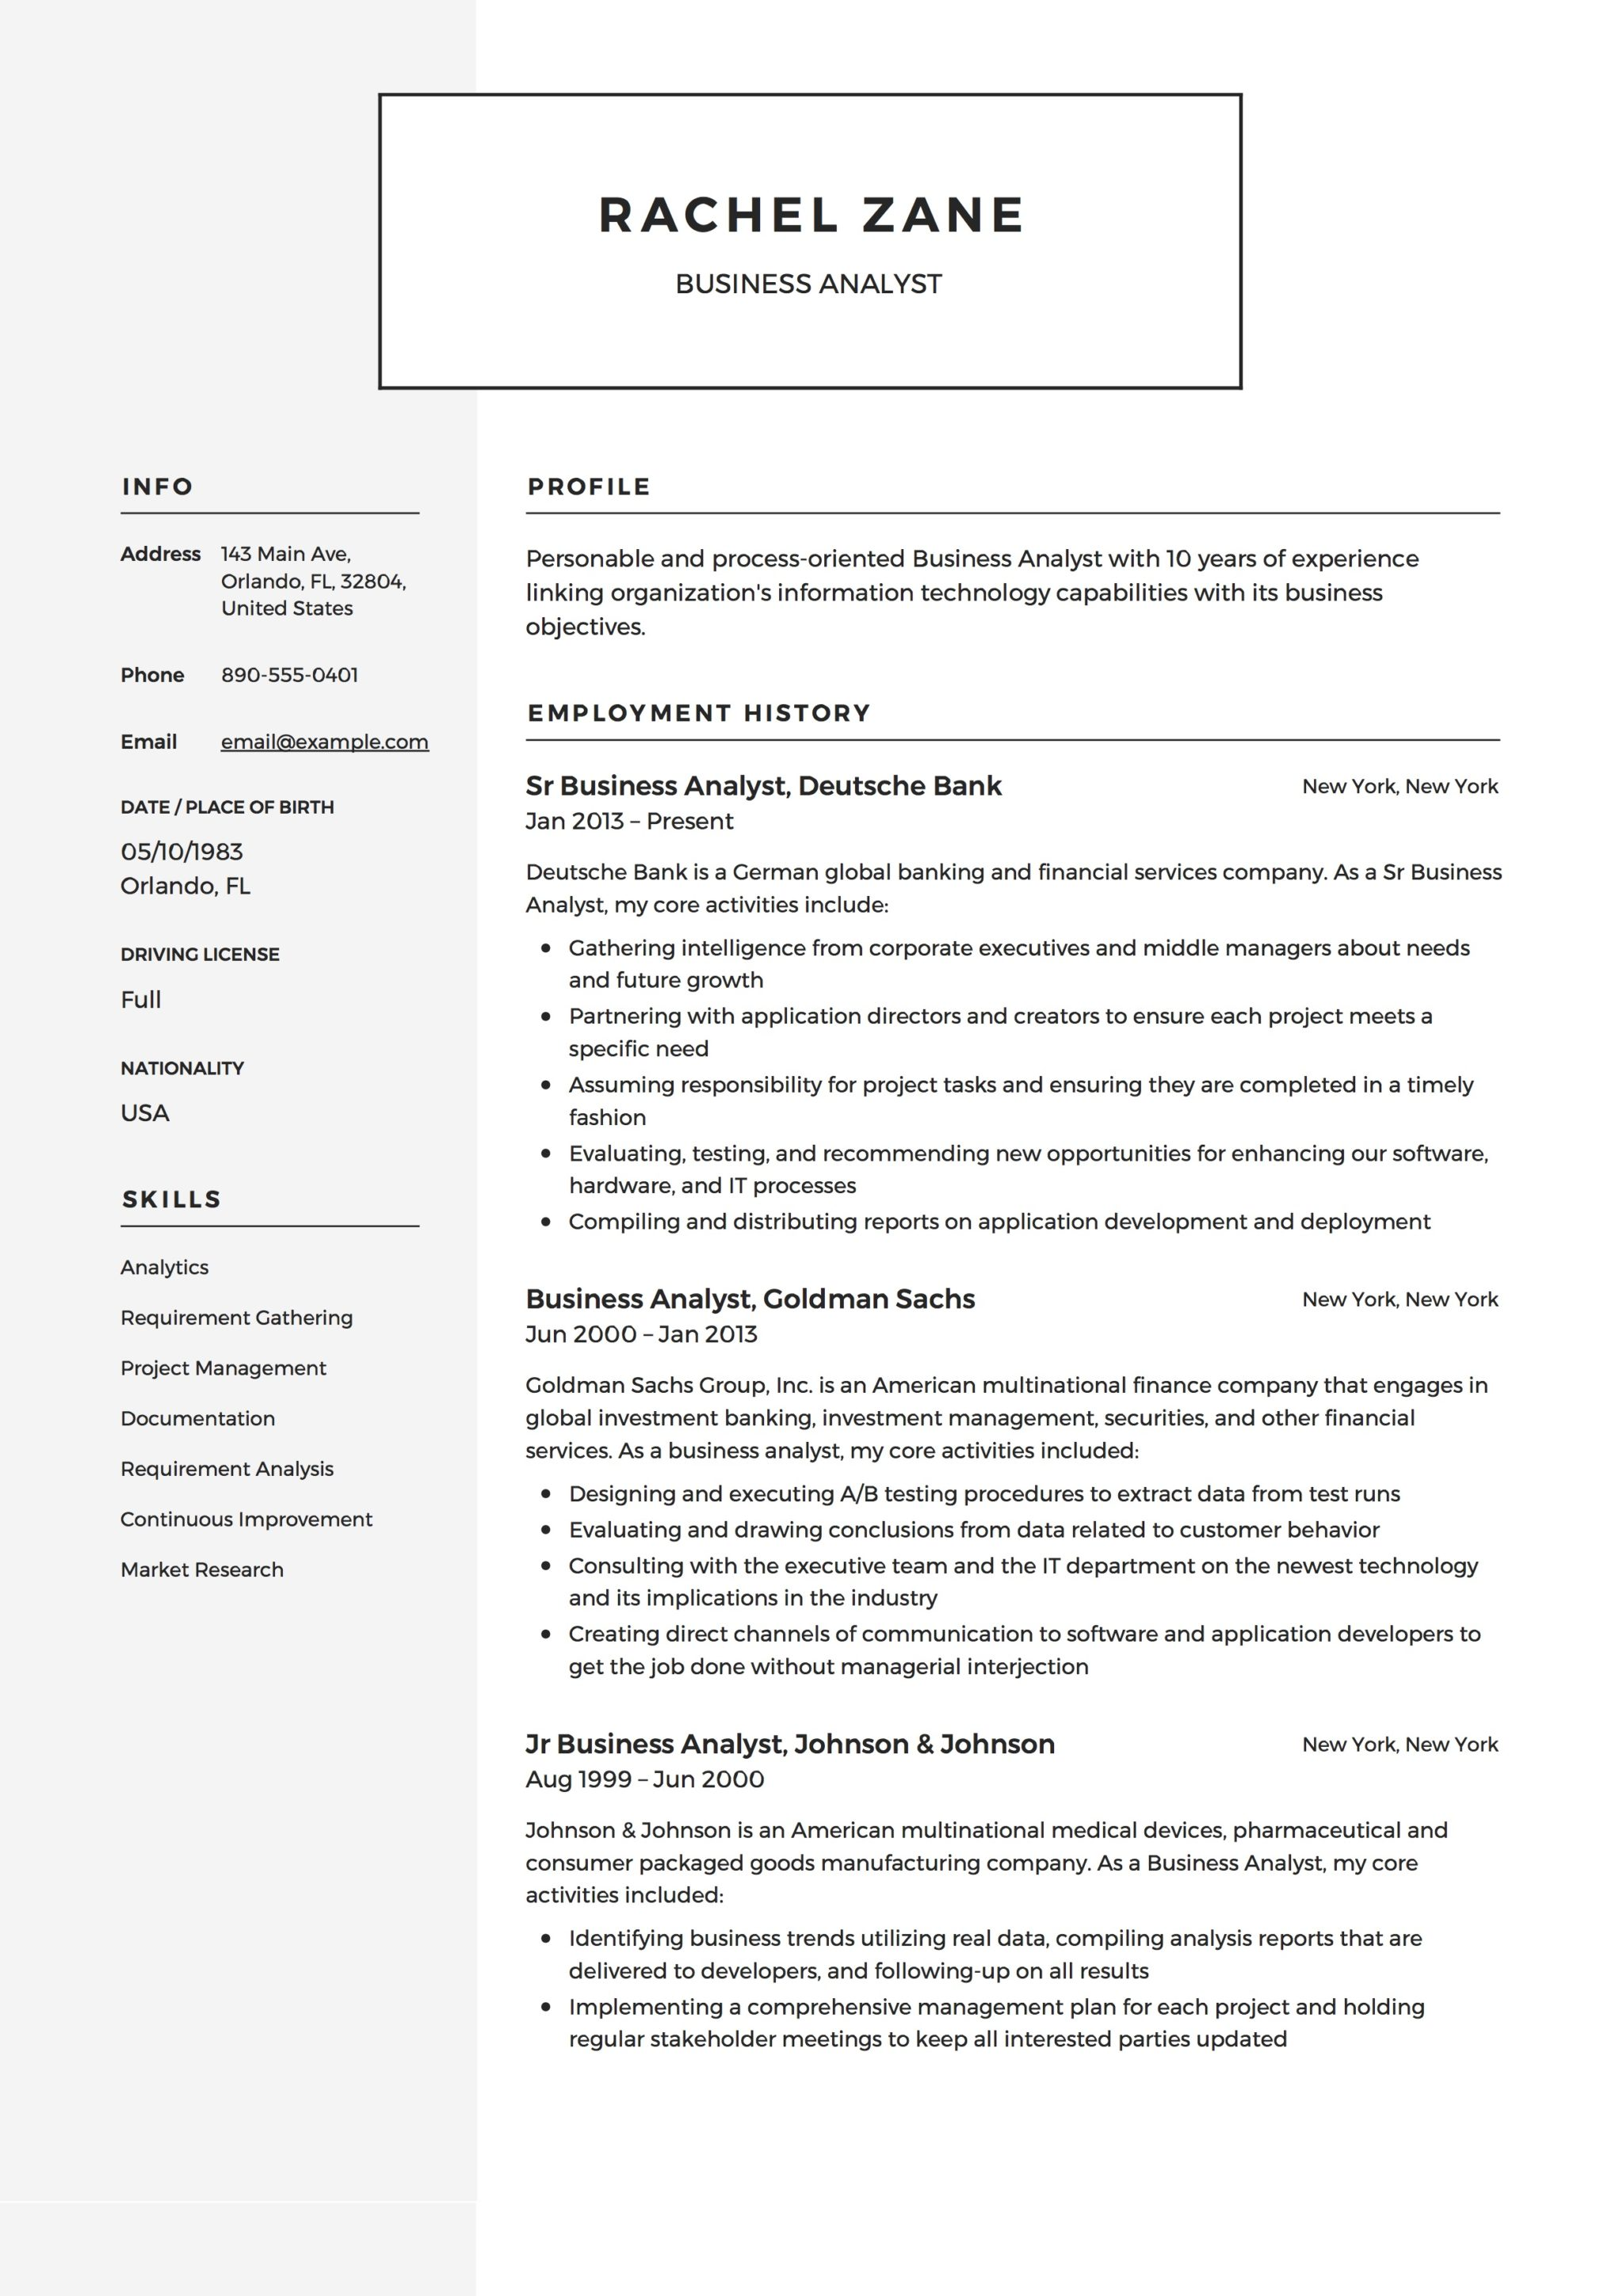 12 business analyst resume samples 2018 free downloads resume template business analyst accmission